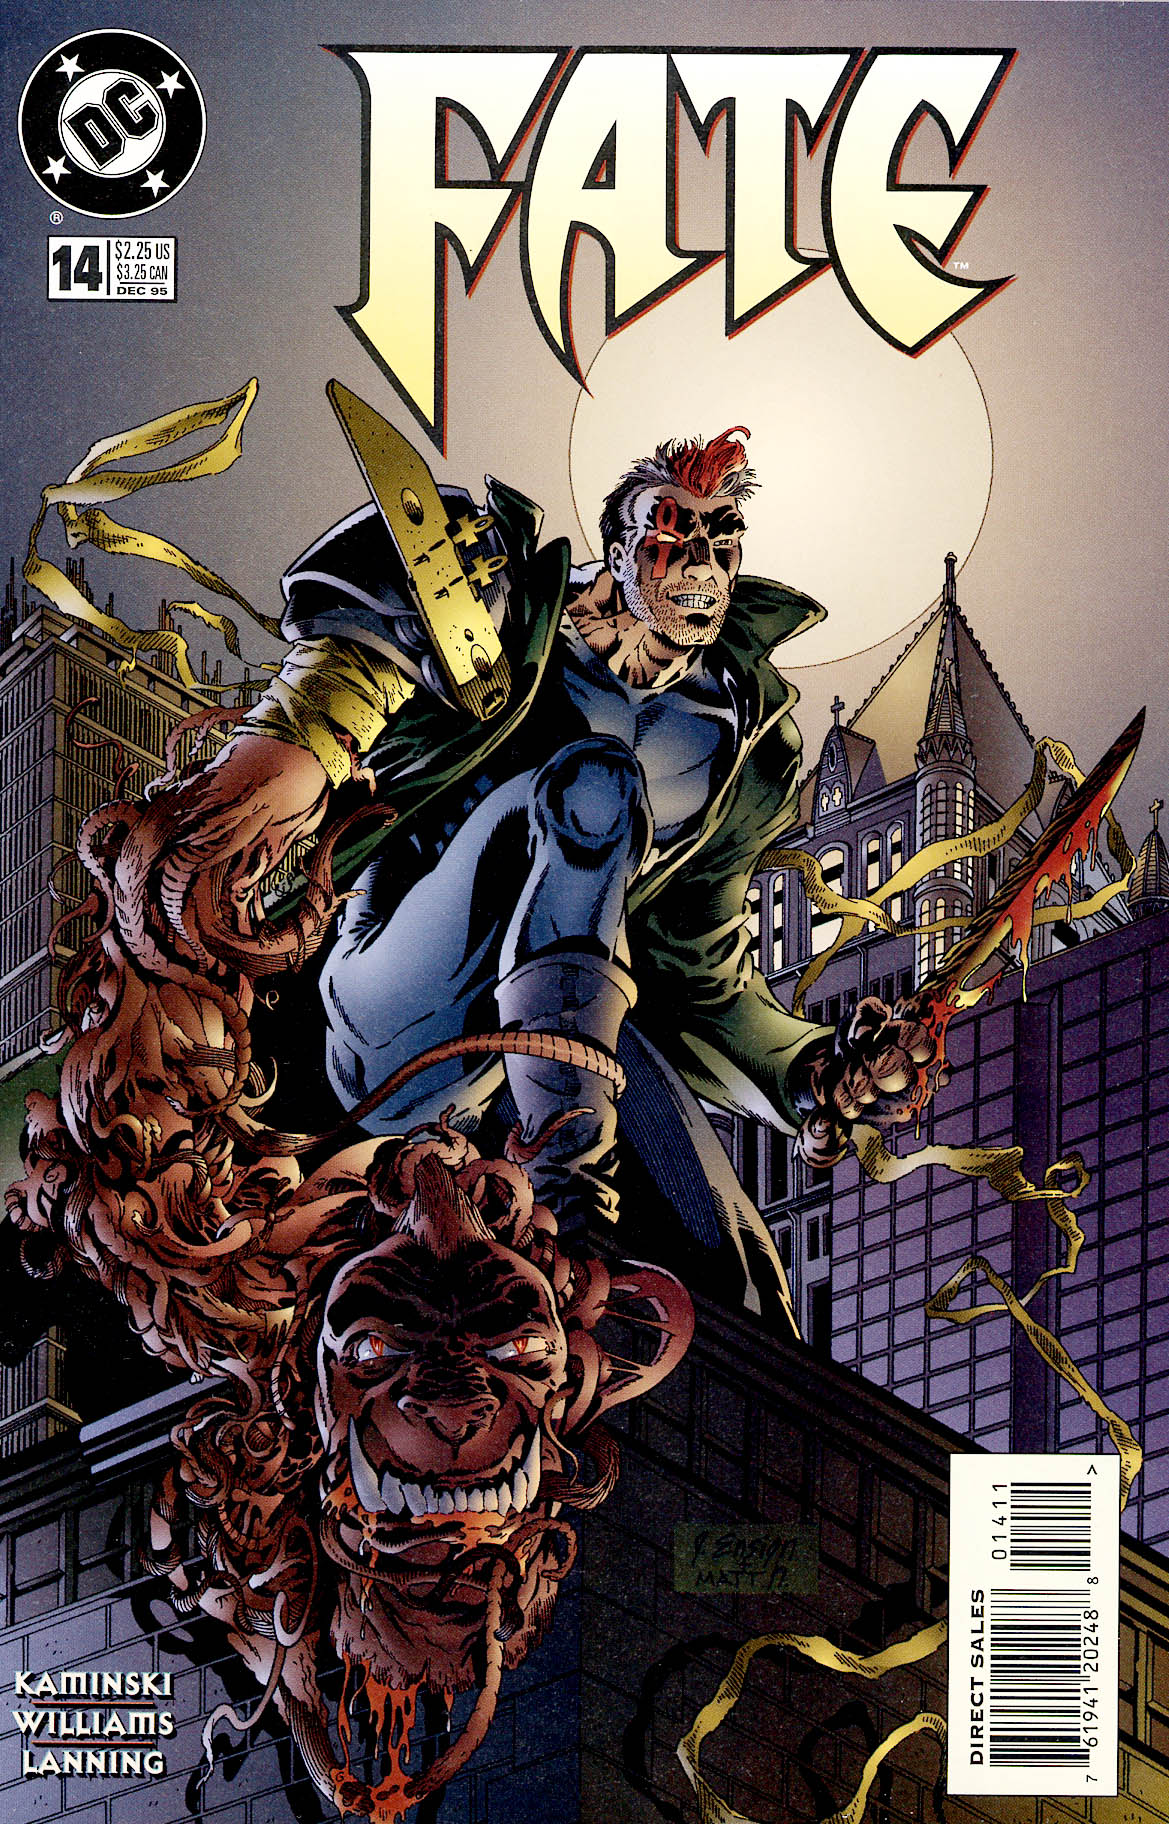 Read online Fate comic -  Issue #14 - 1